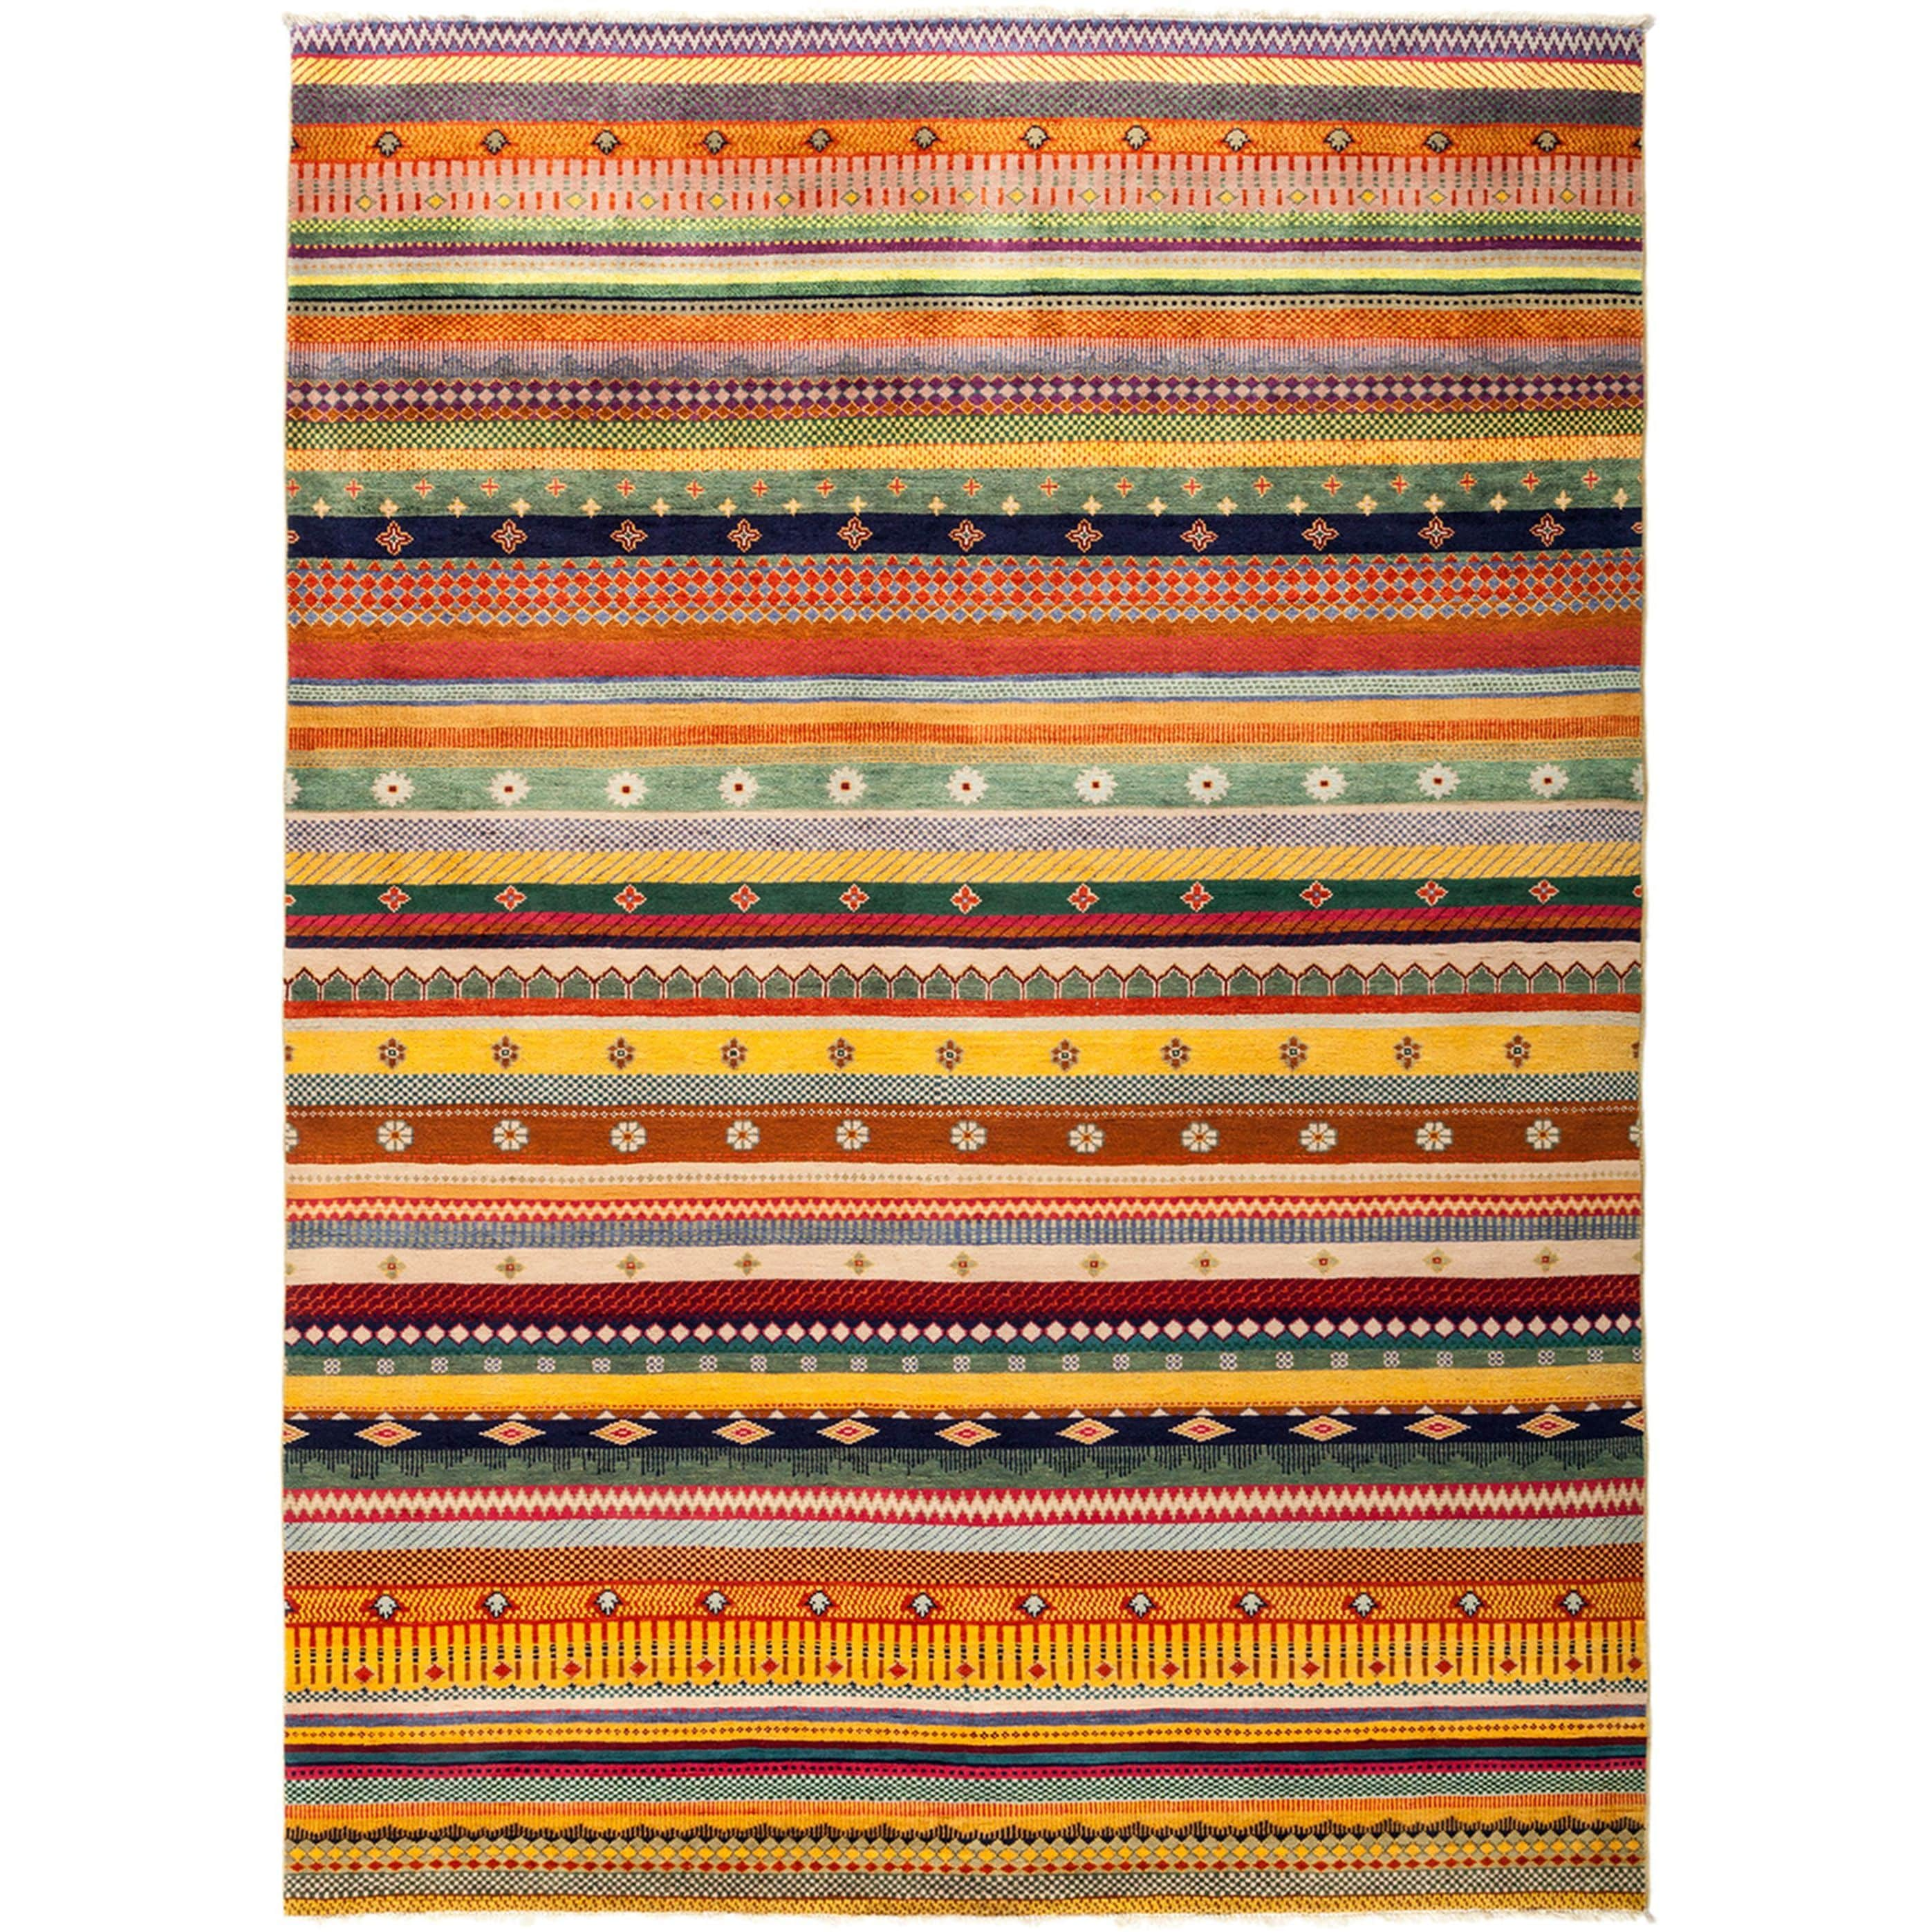 Huzuge Hand Knotted Area Rug - Multi